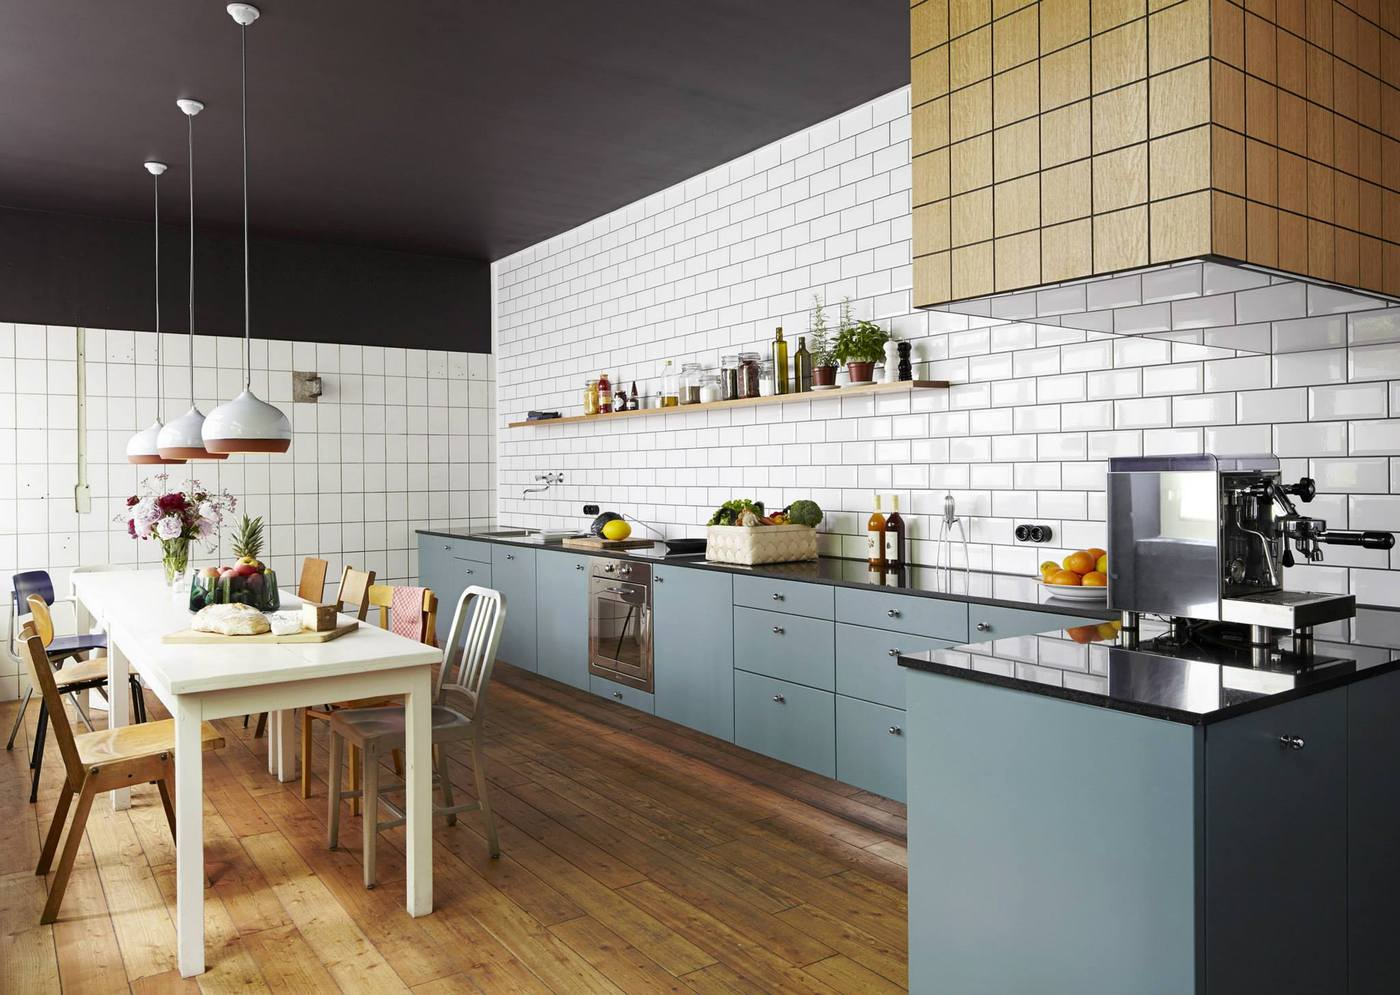 white subway tile kitchen designs are incredibly universal: urban